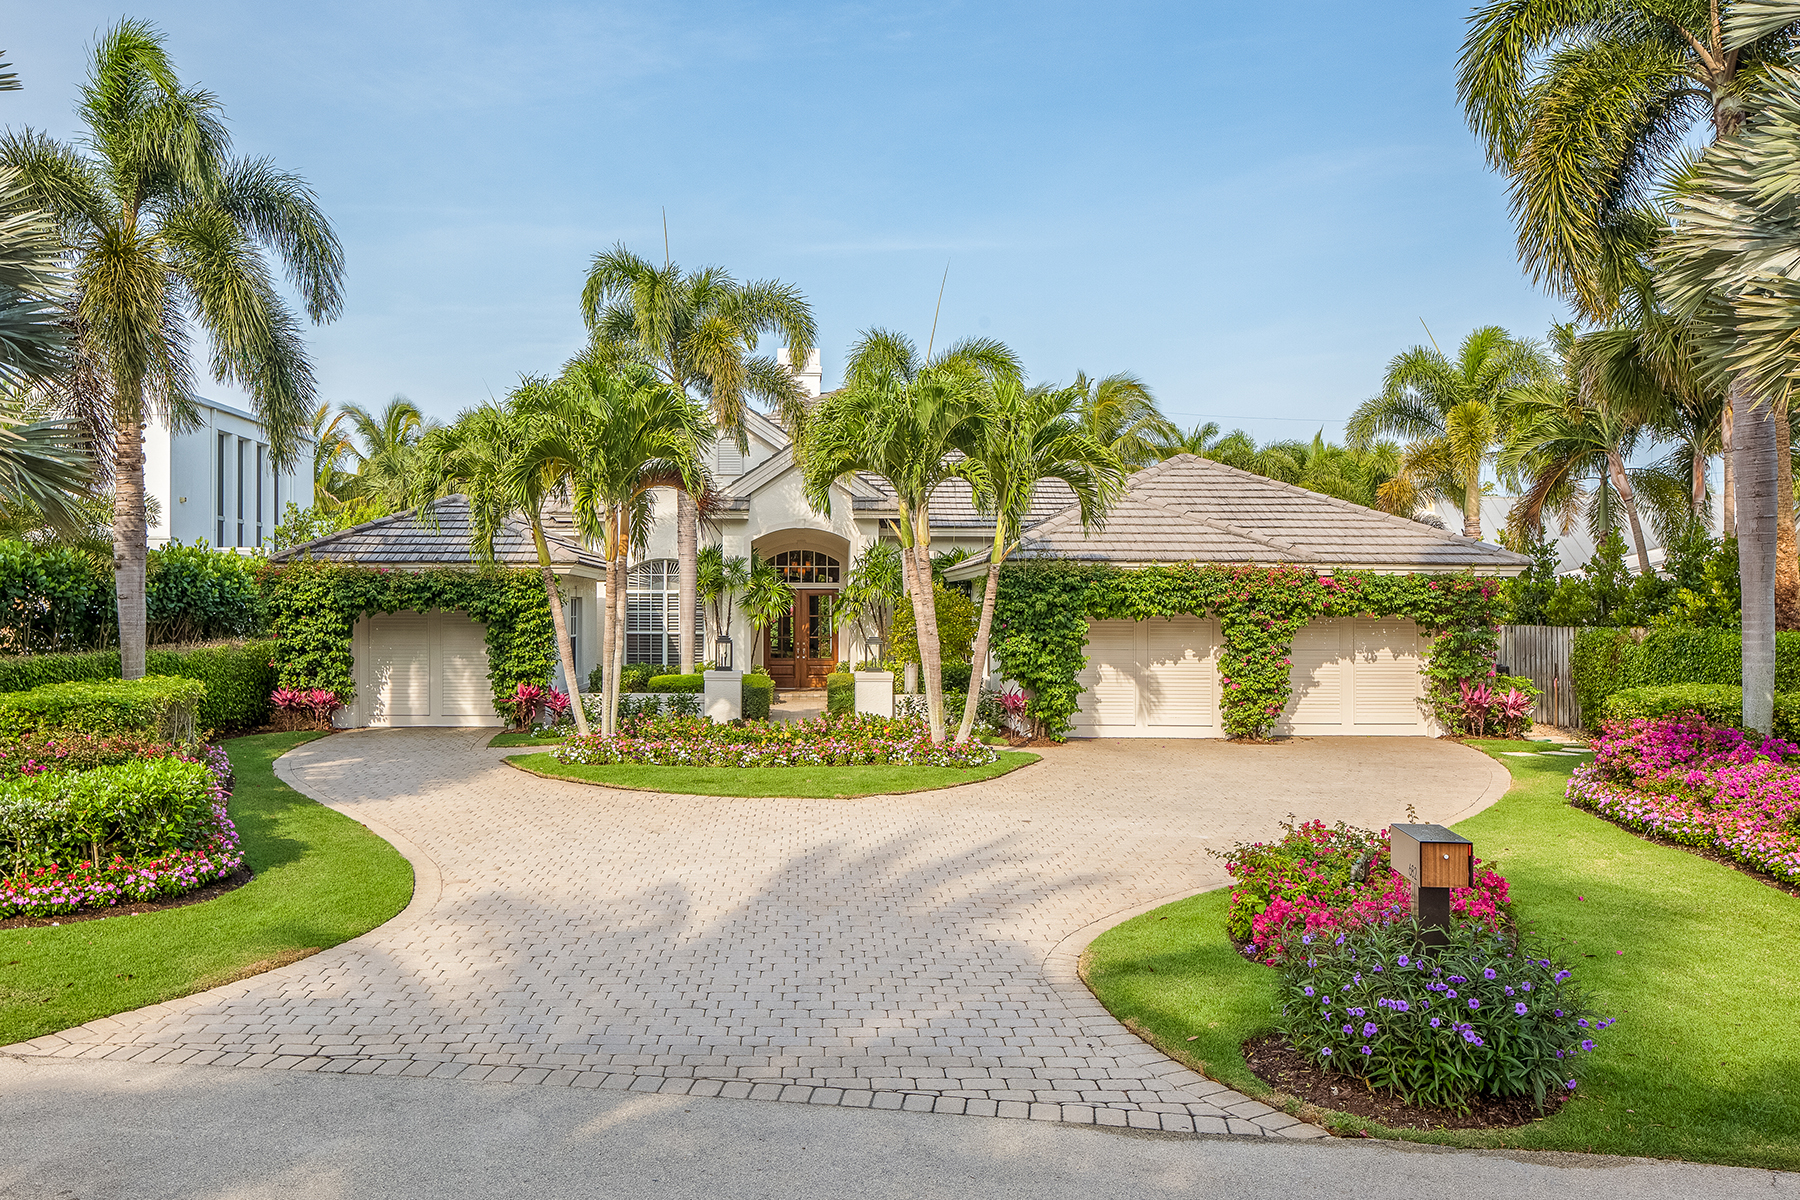 Single Family Home for Sale at OLDE NAPLES 682 Bougainvillea Rd, Naples, Florida 34102 United States